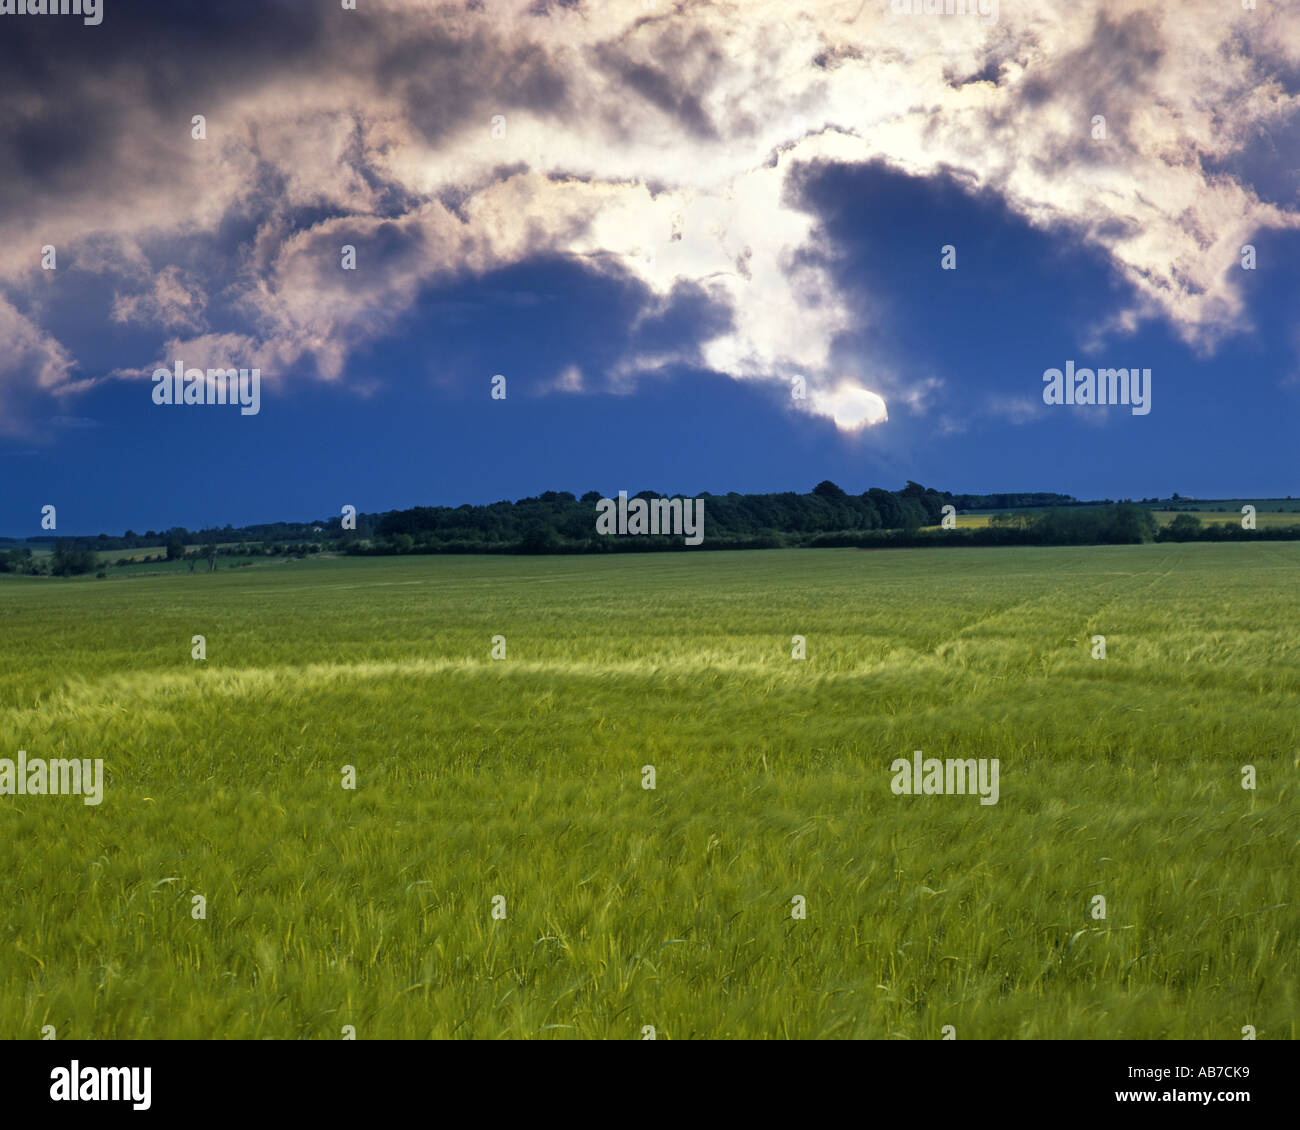 GB - GLOUCESTERSHIRE:  Barley Field in the Cotswolds Stock Photo